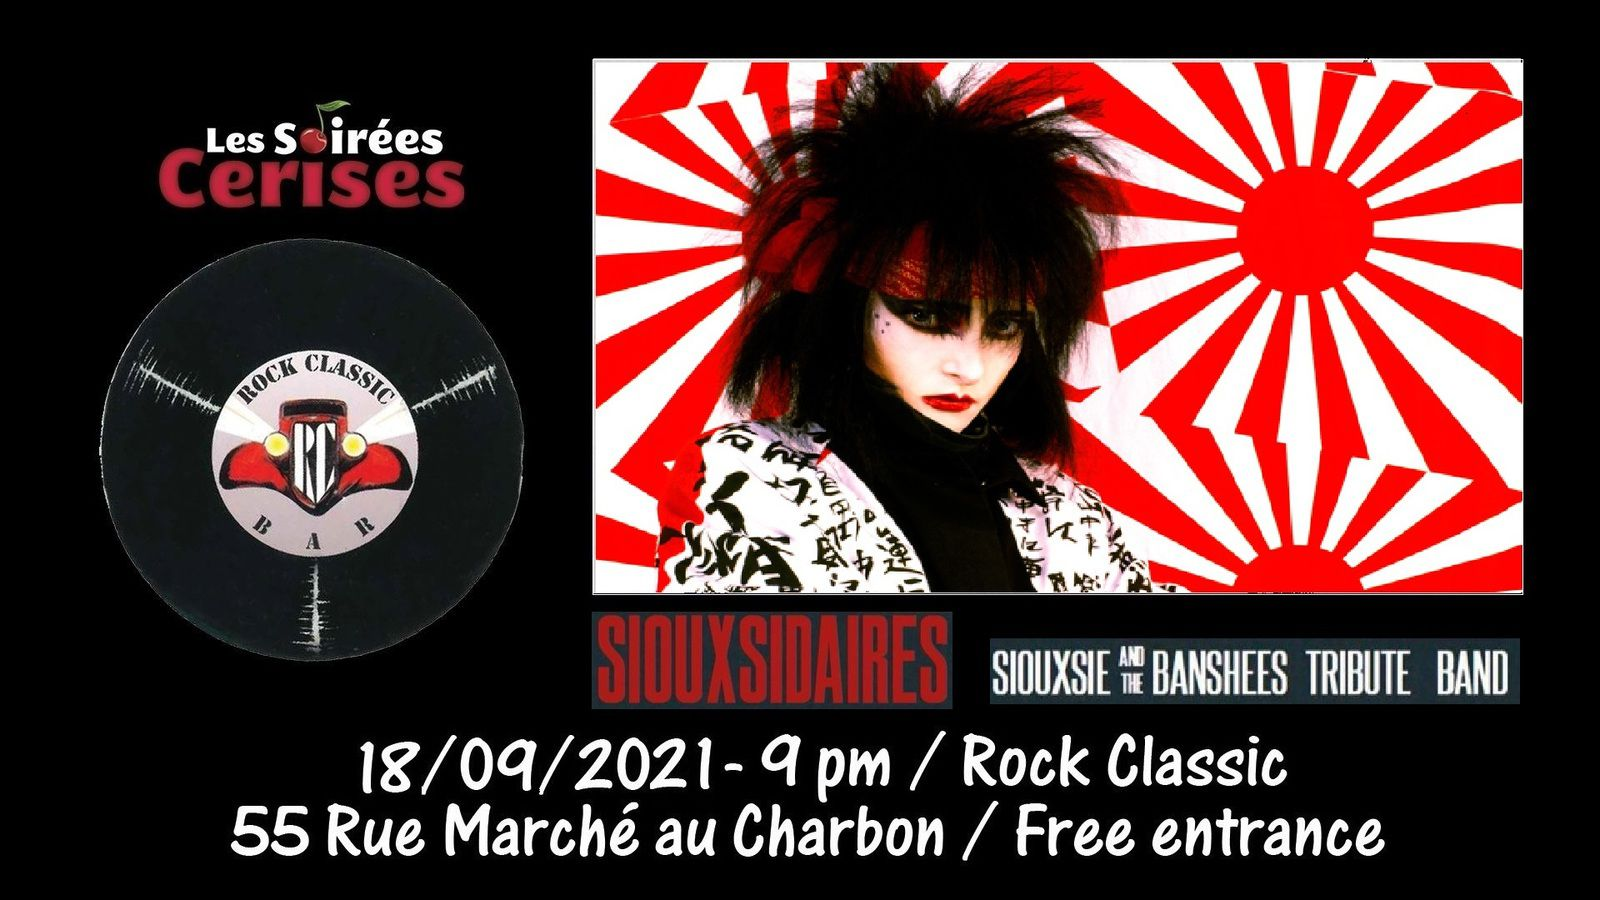 🎵 Siouxsidaires (Siouxsie and the Banshees tribute band) @ Rock Classic - annulé